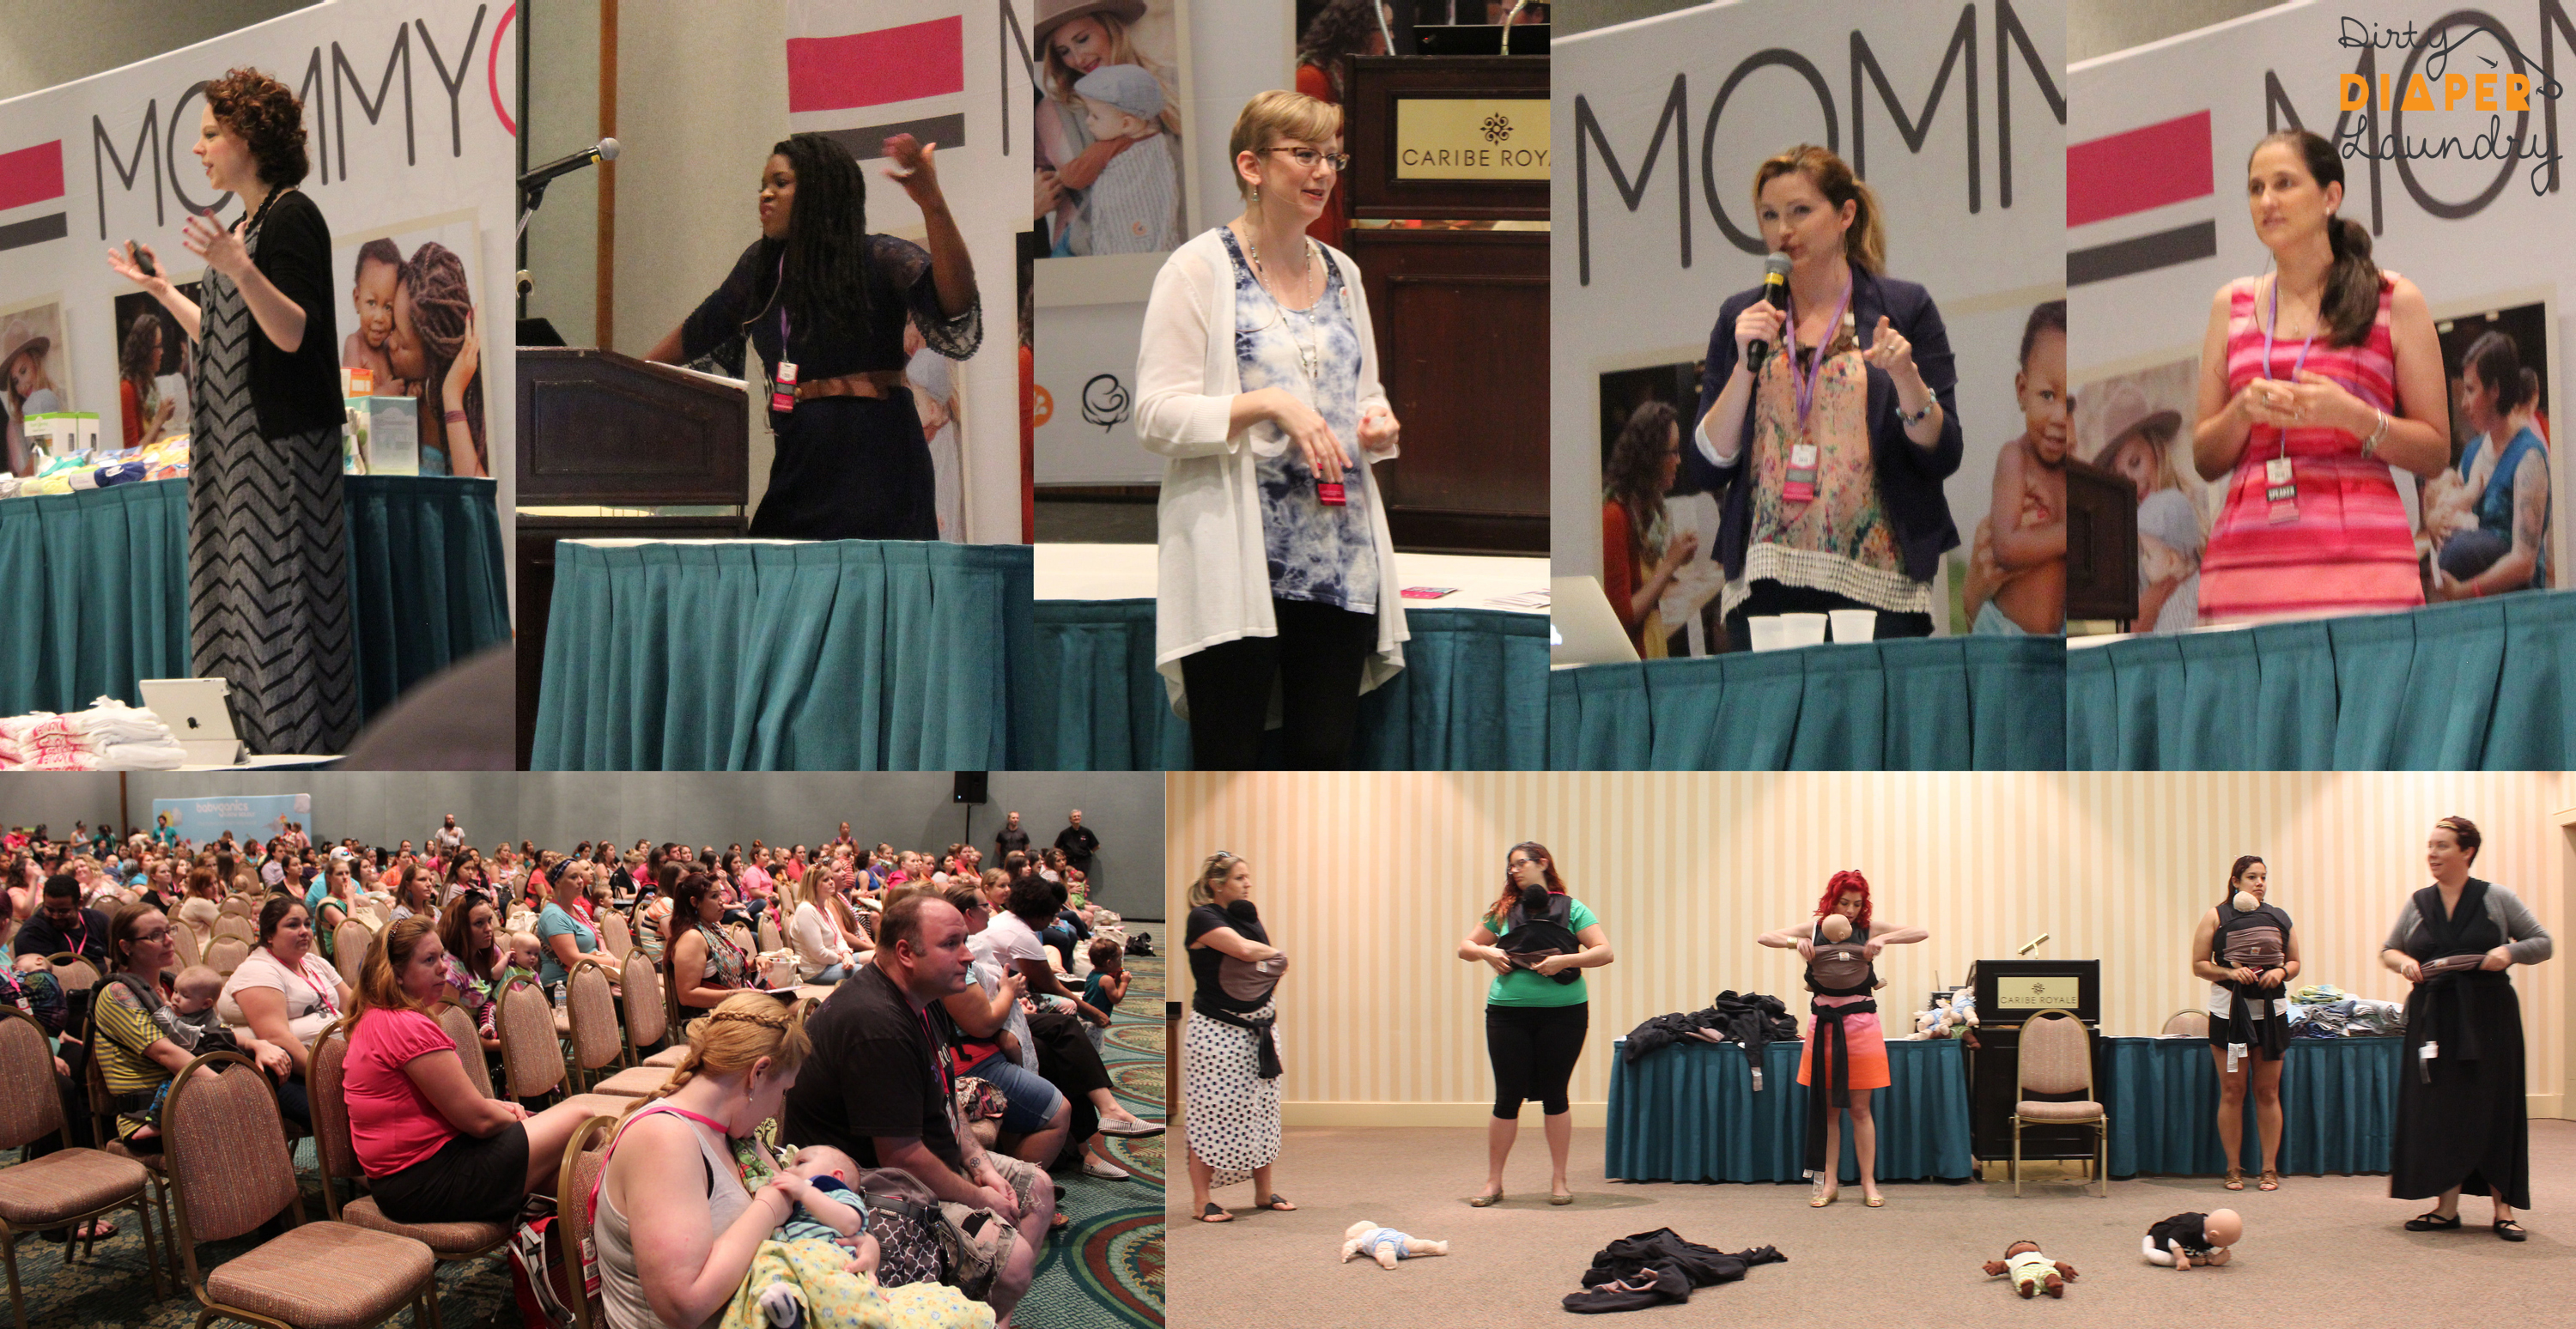 MommyCon Orlando Speakers